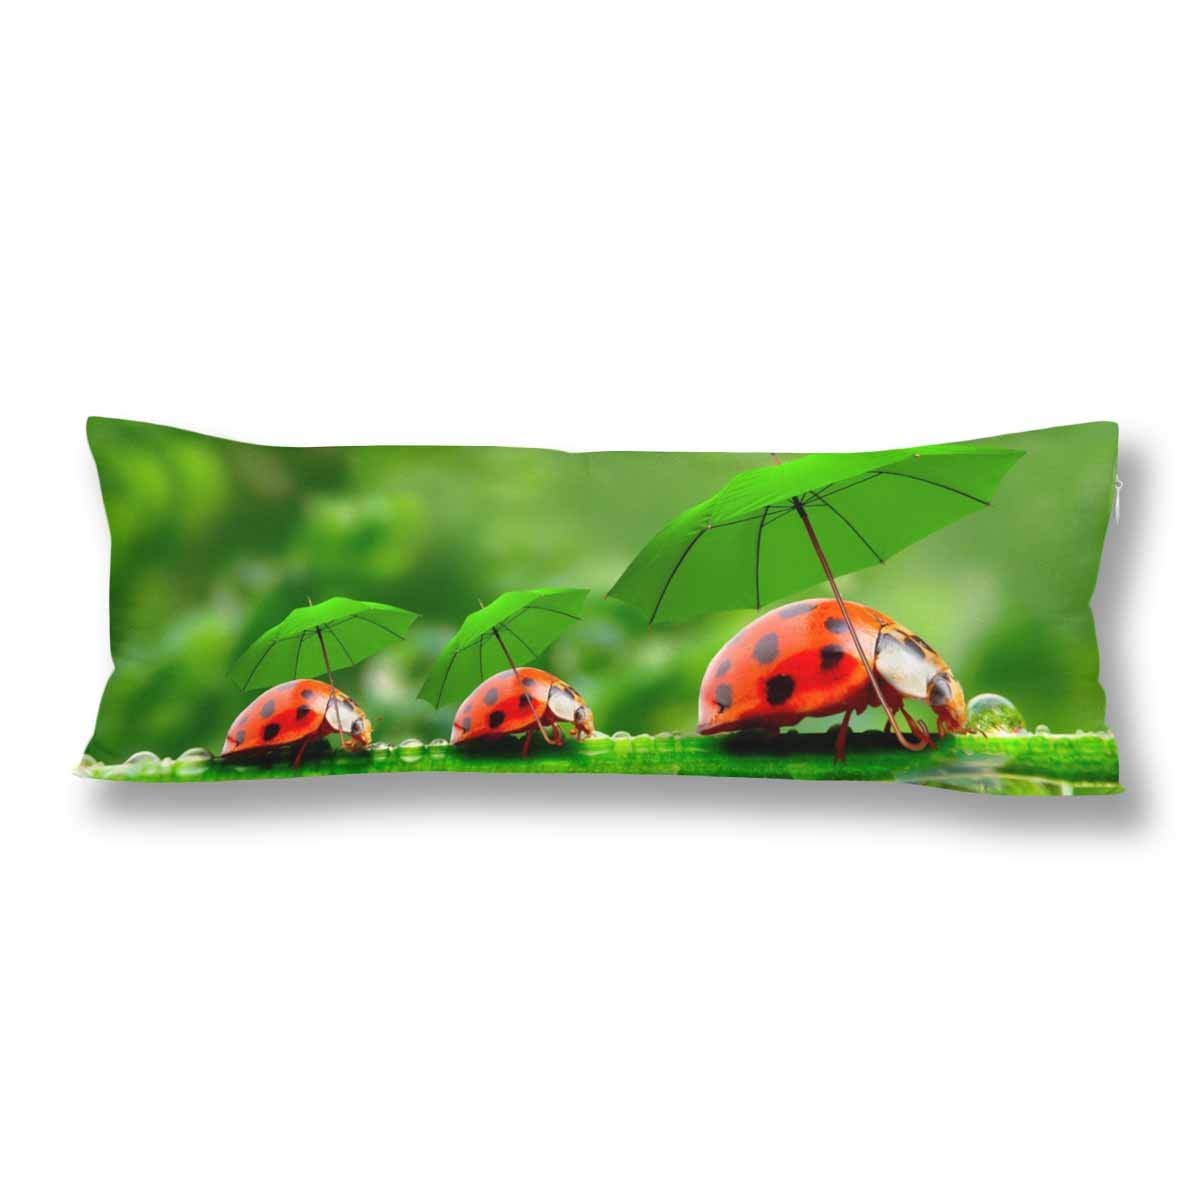 GCKG Nature Ladybugs With Umbrella On Grass Body Pillow Covers Pillowcase 20x60 inches, Ladybird Body Pillow Case Protector - image 2 de 2